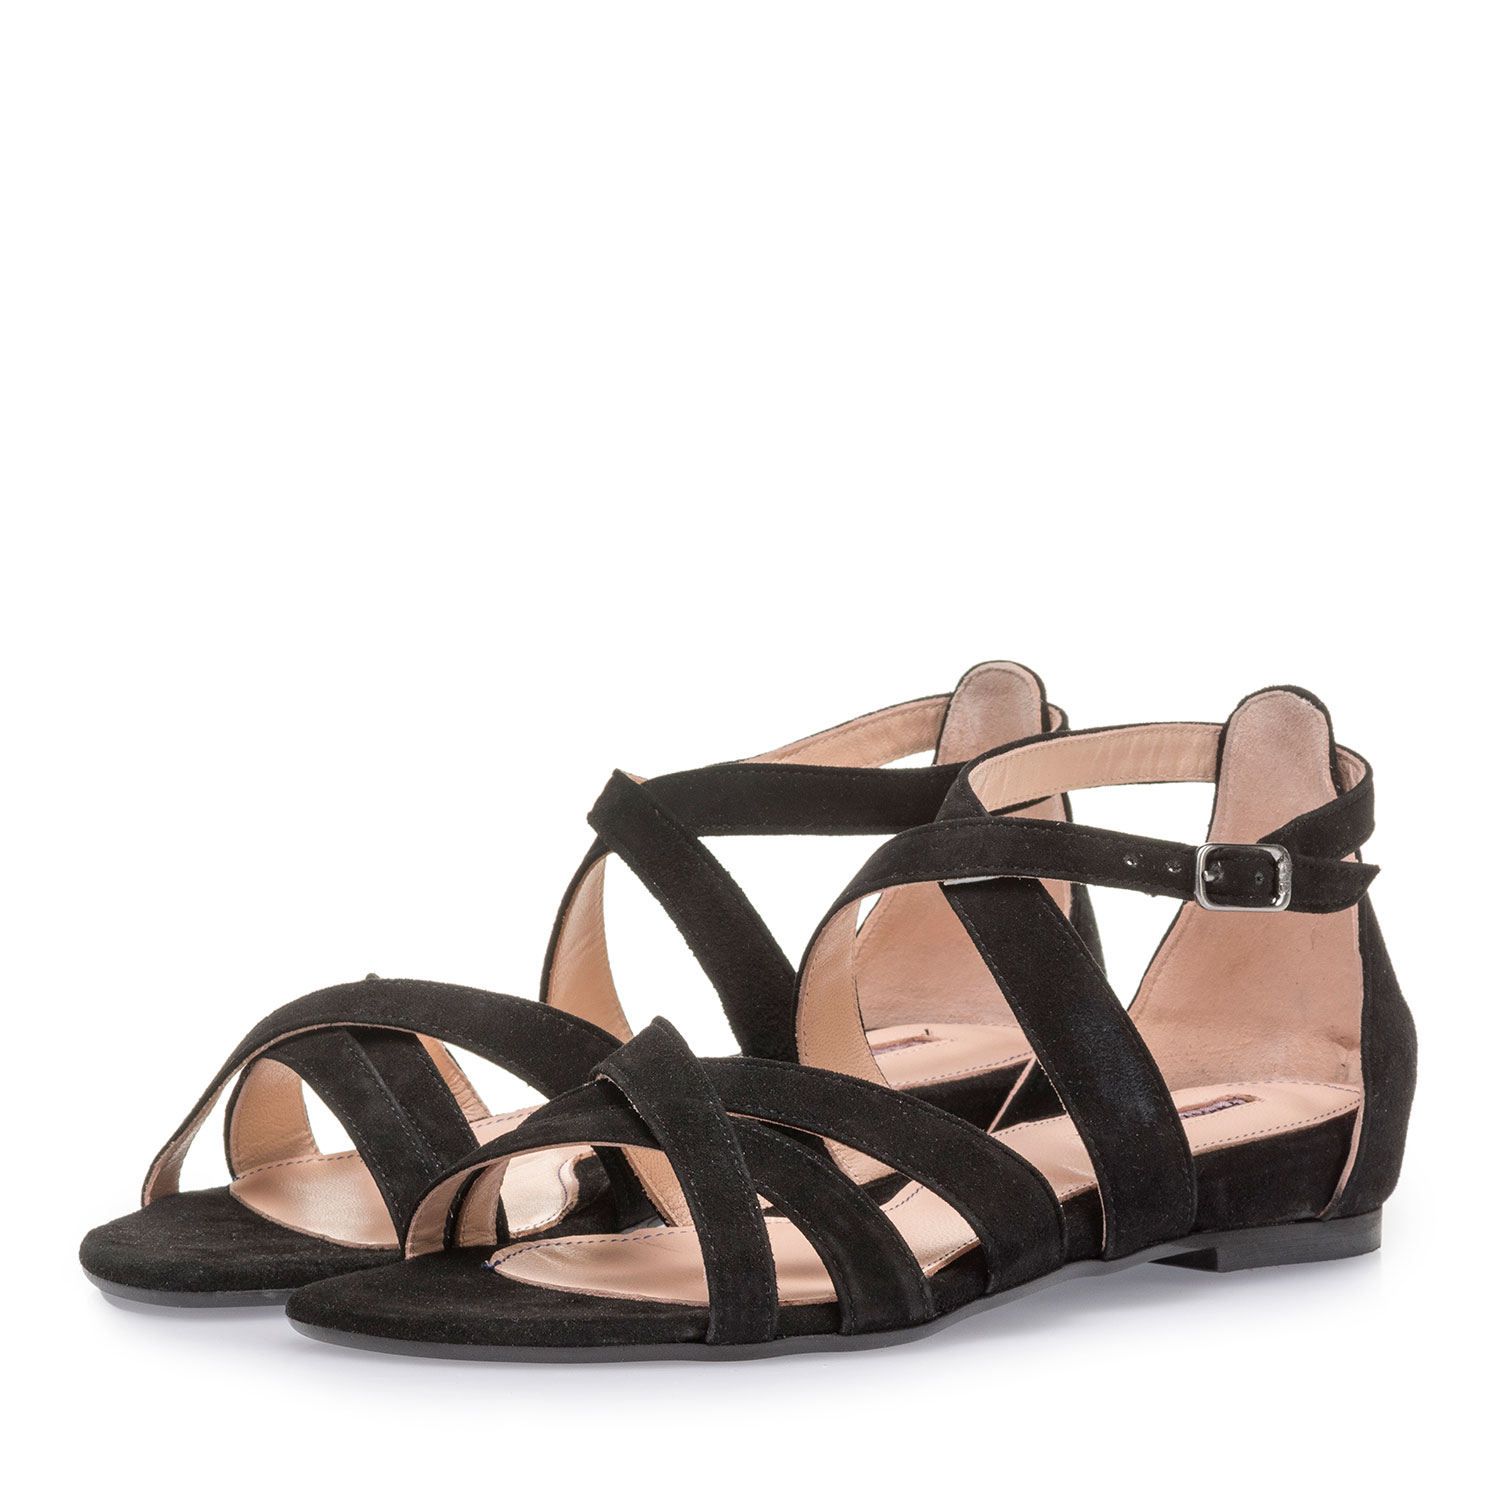 85956/04 - Black suede leather sandals